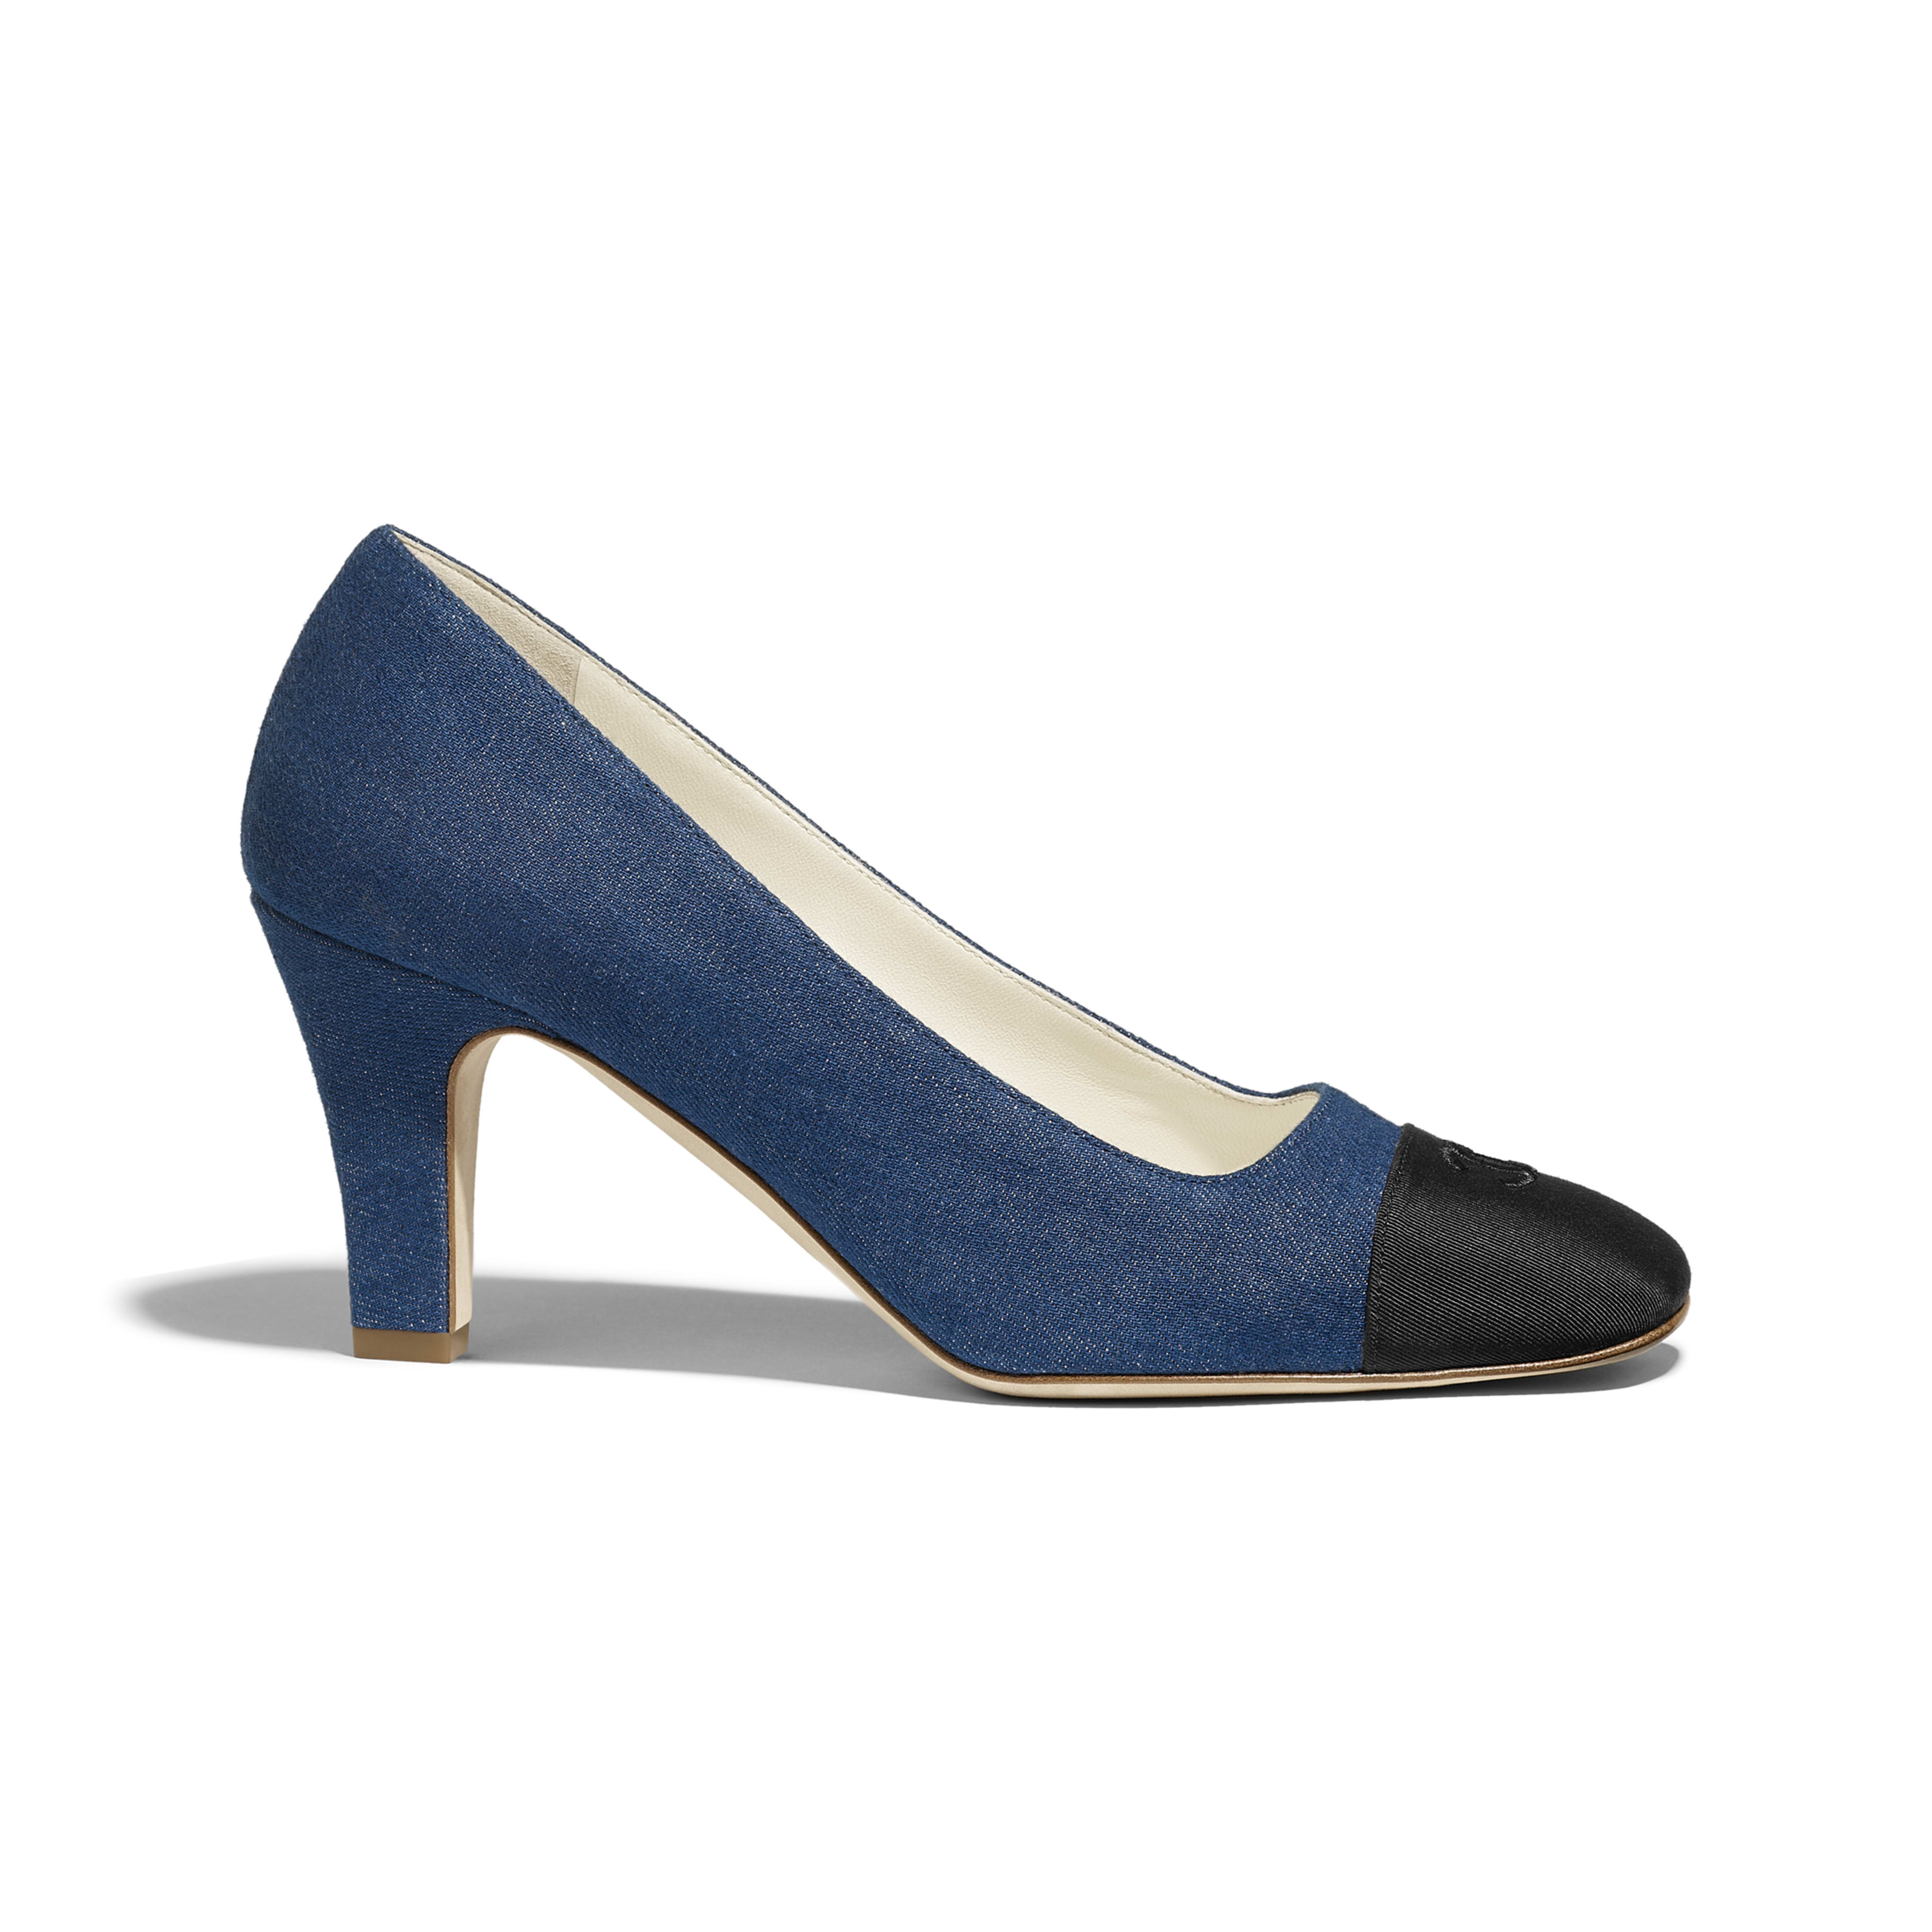 Pumps - Blue & Black - Fabric & Grosgrain - Default view - see full sized version